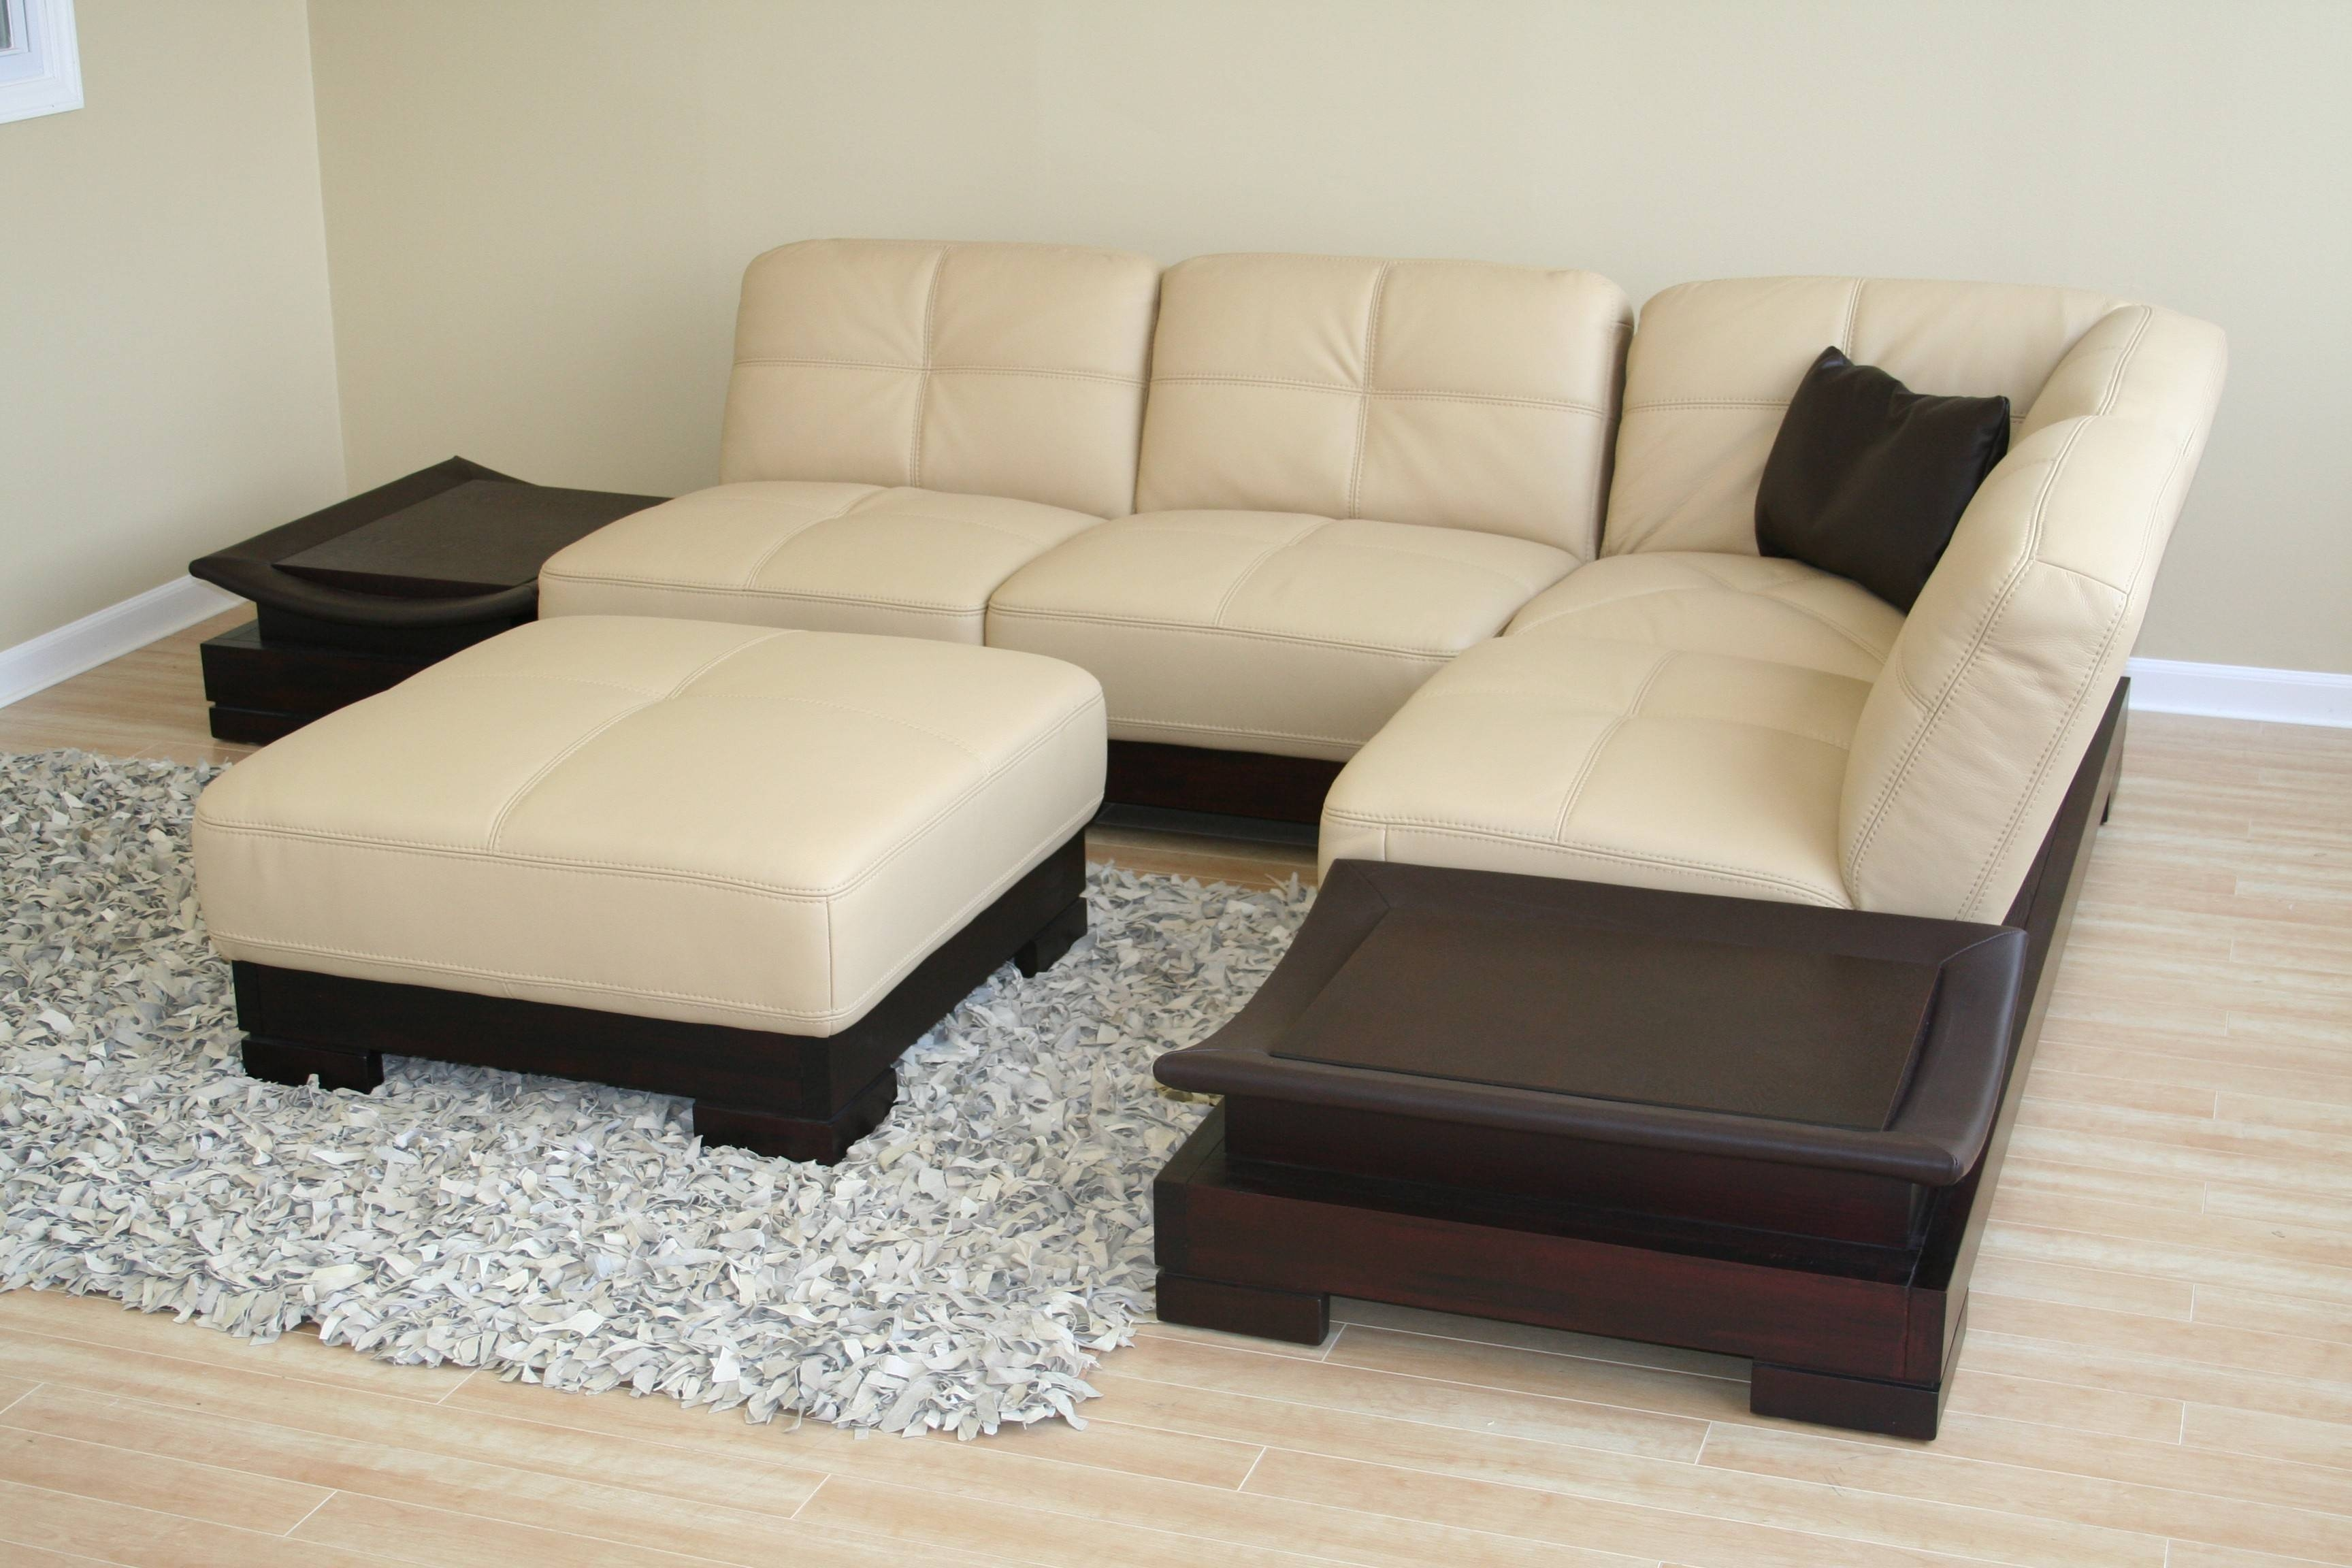 New Small Scale Sectional Sofa With Chaise 41 About Remodel C Regarding C Shaped Sofa (View 23 of 30)